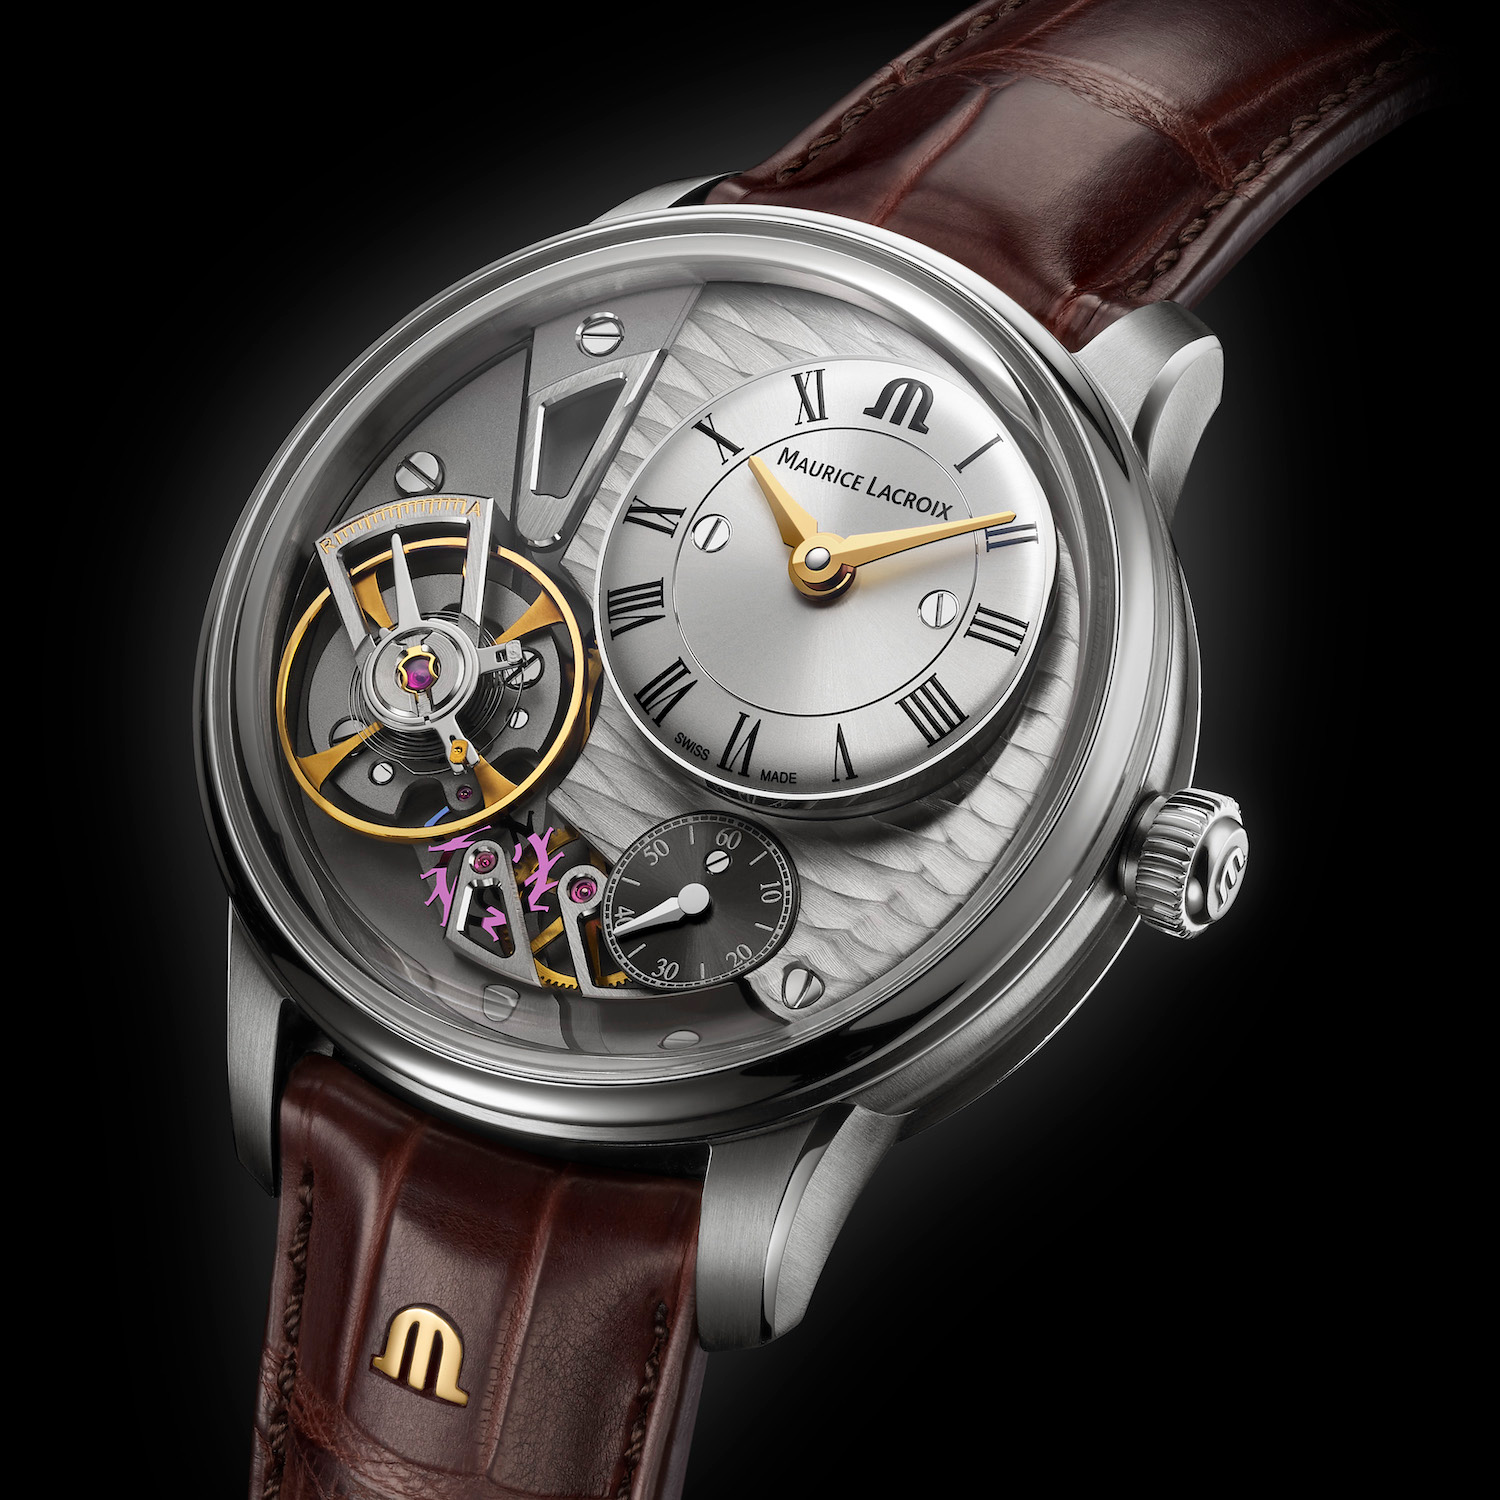 The Maurice Lacroix's Masterpiece Gravity is powered by caliber ML 230 with a power reserve of 50 hours.